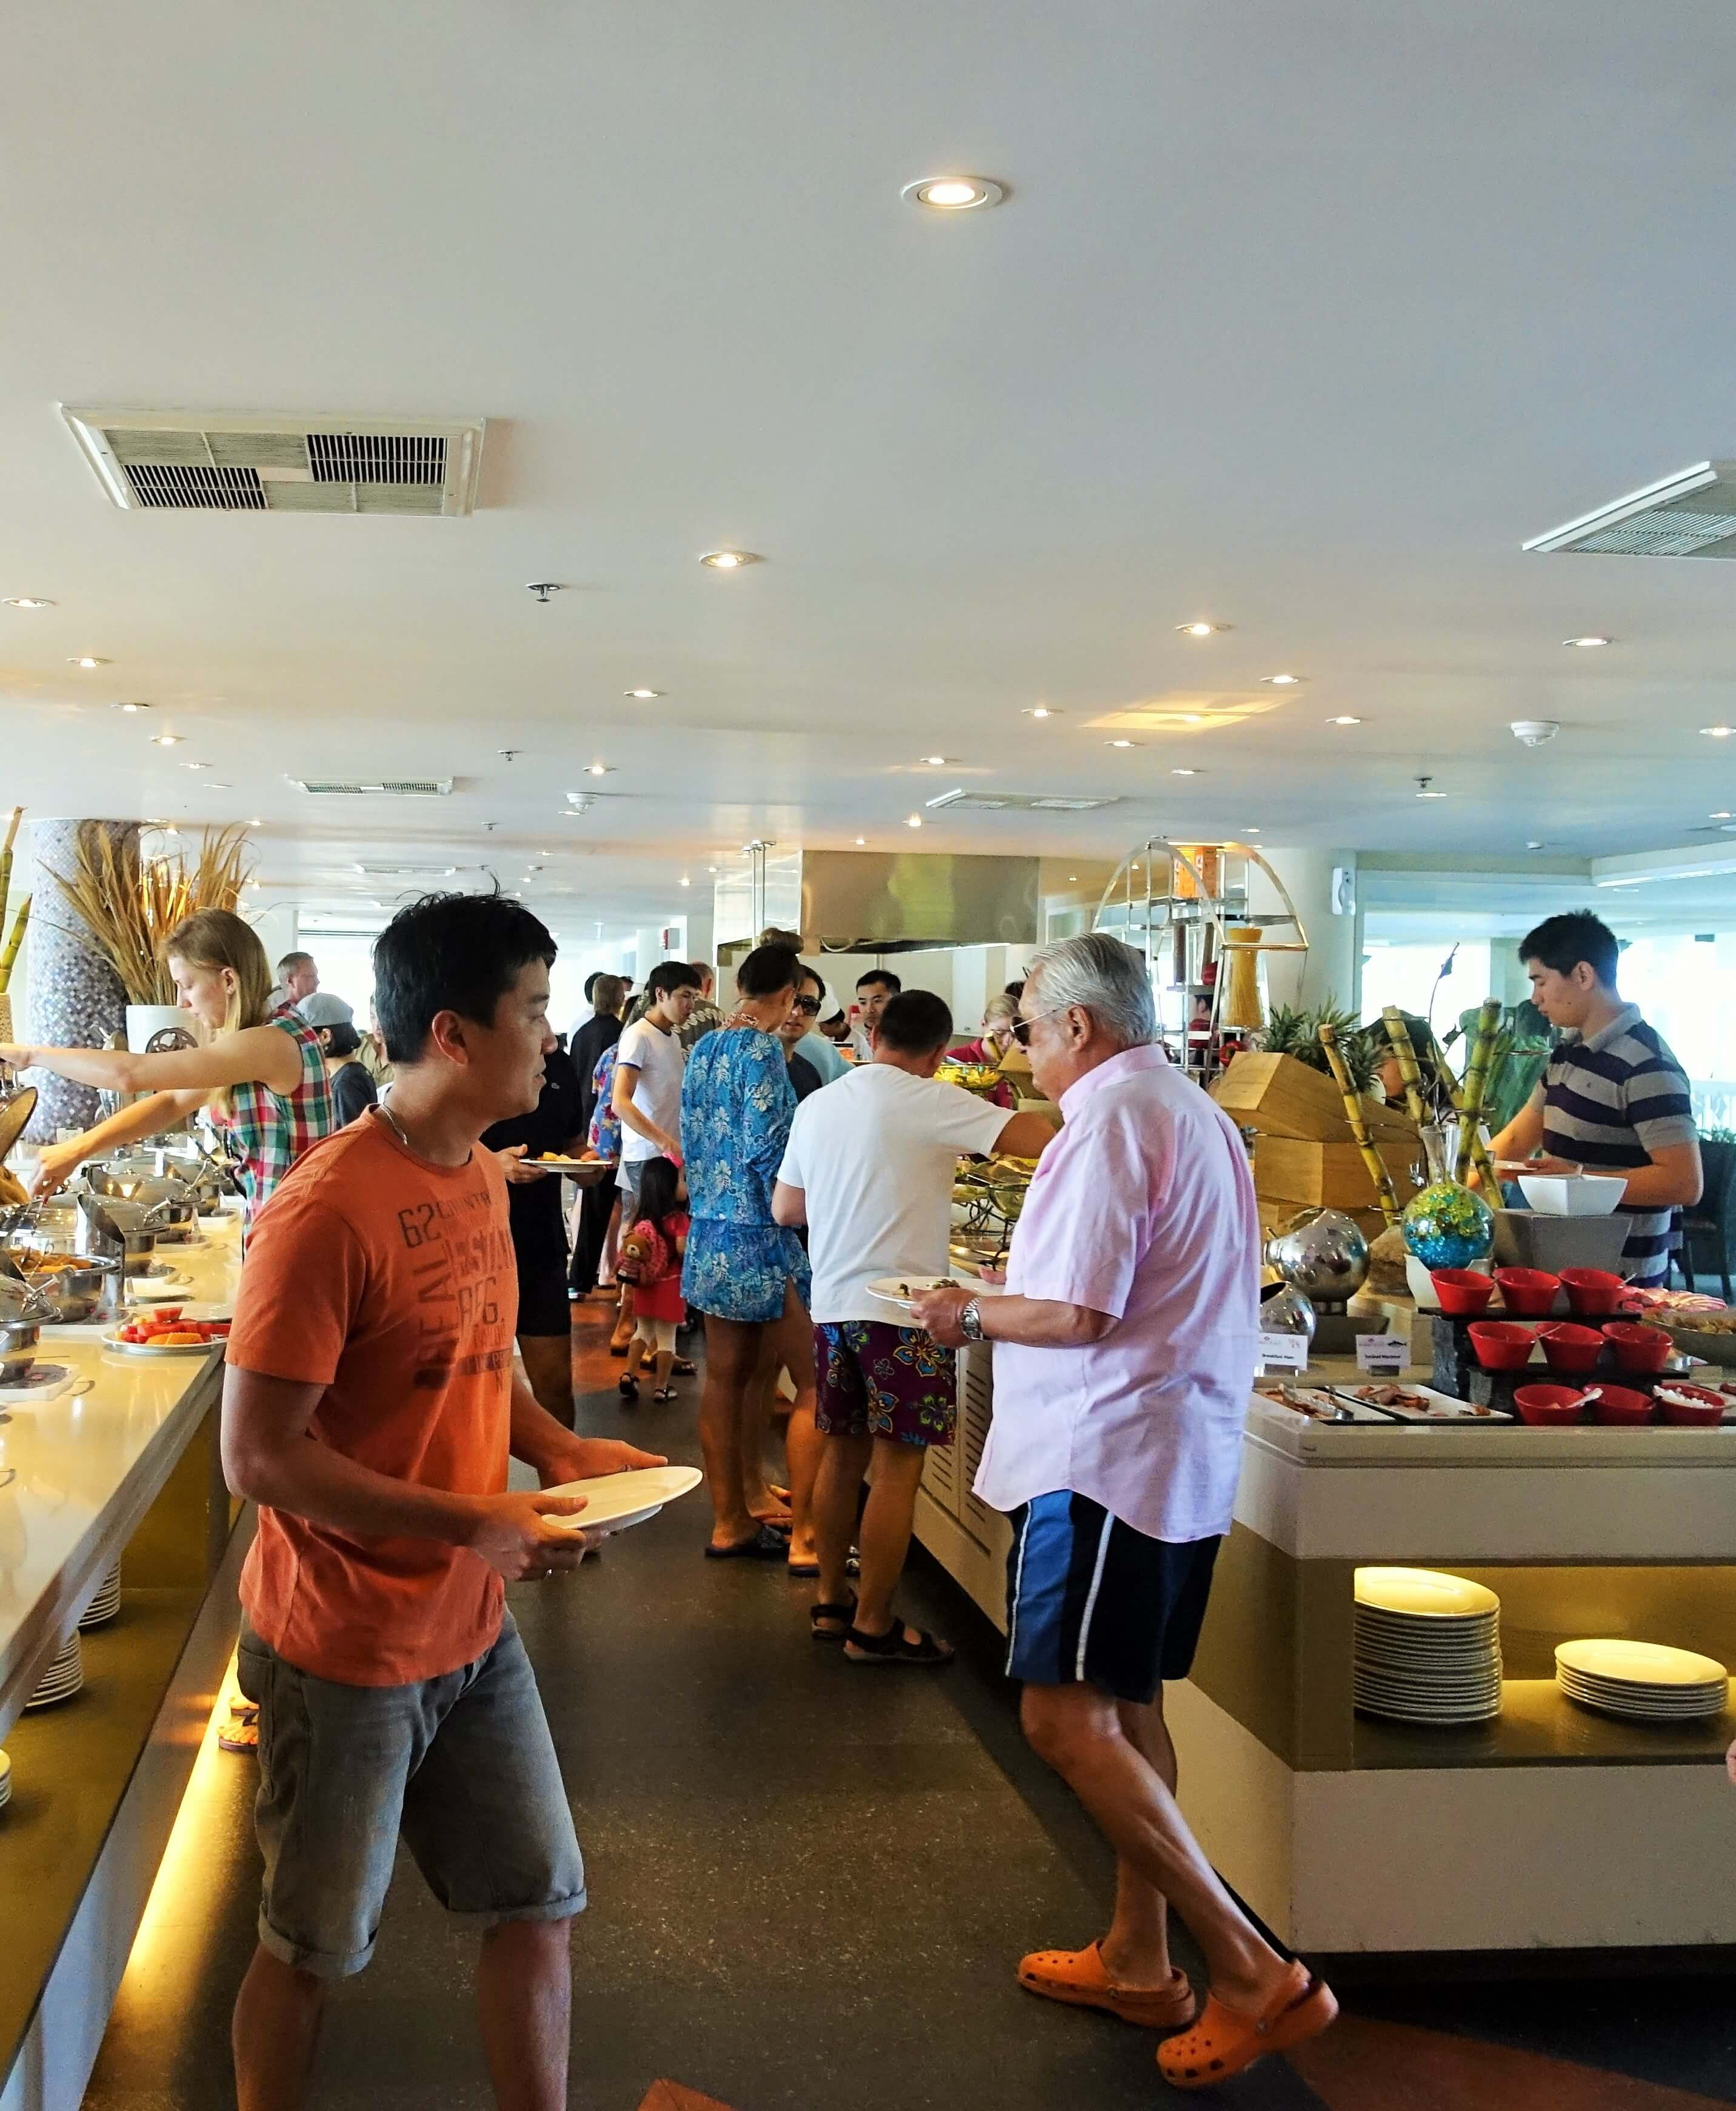 crowds of people round a breakfast buffet